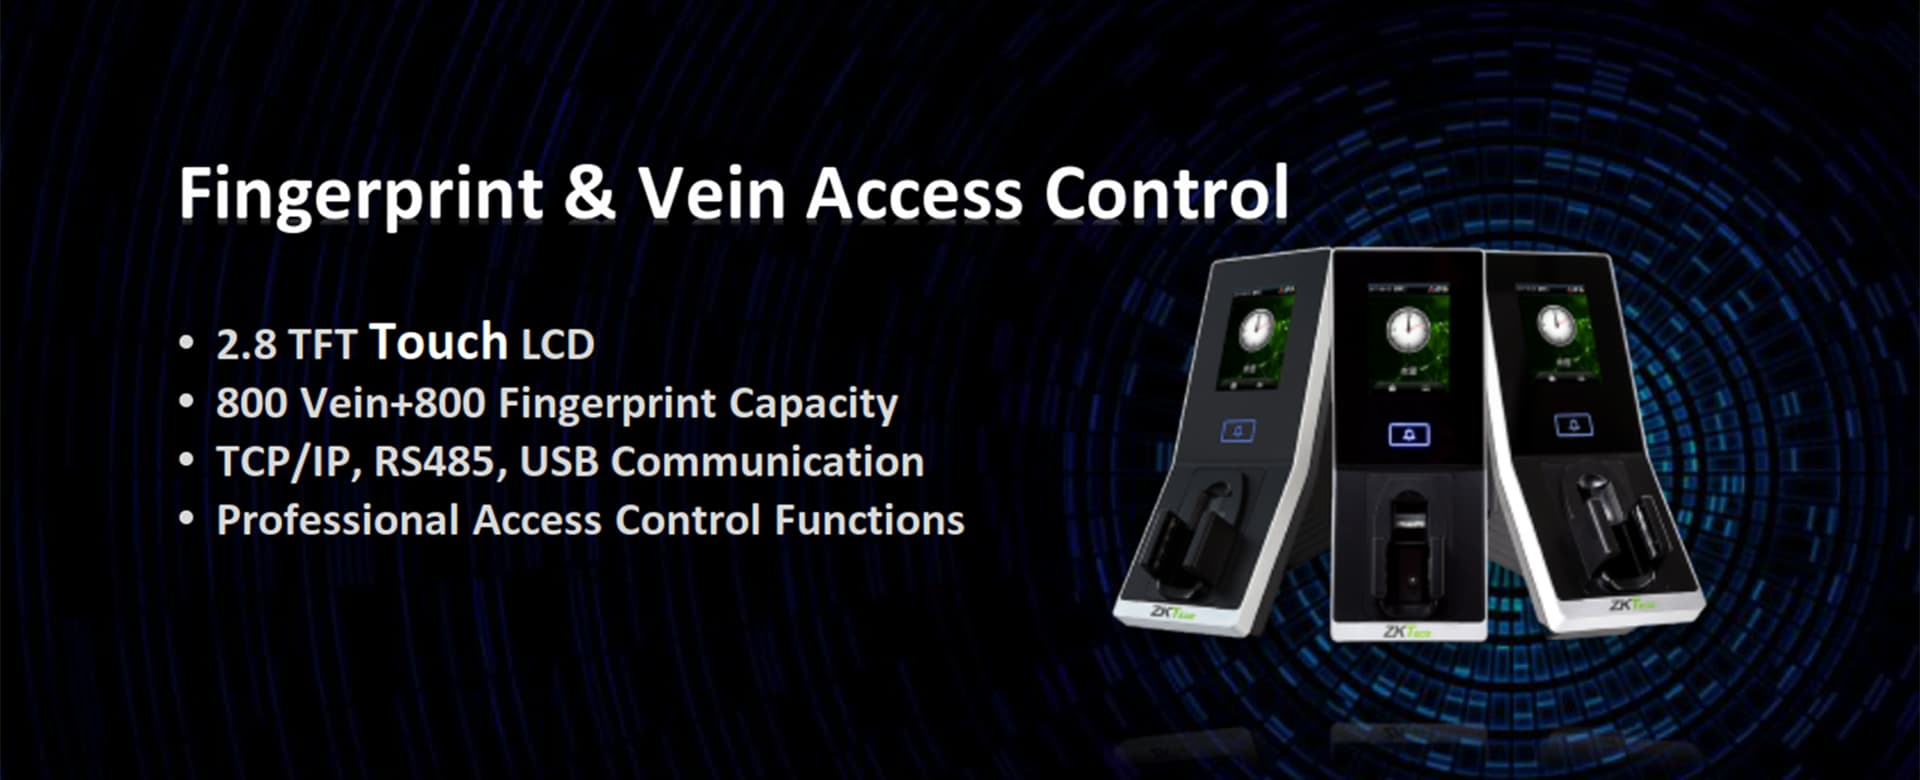 FJ200 Fingerprint Vein Access Control-s